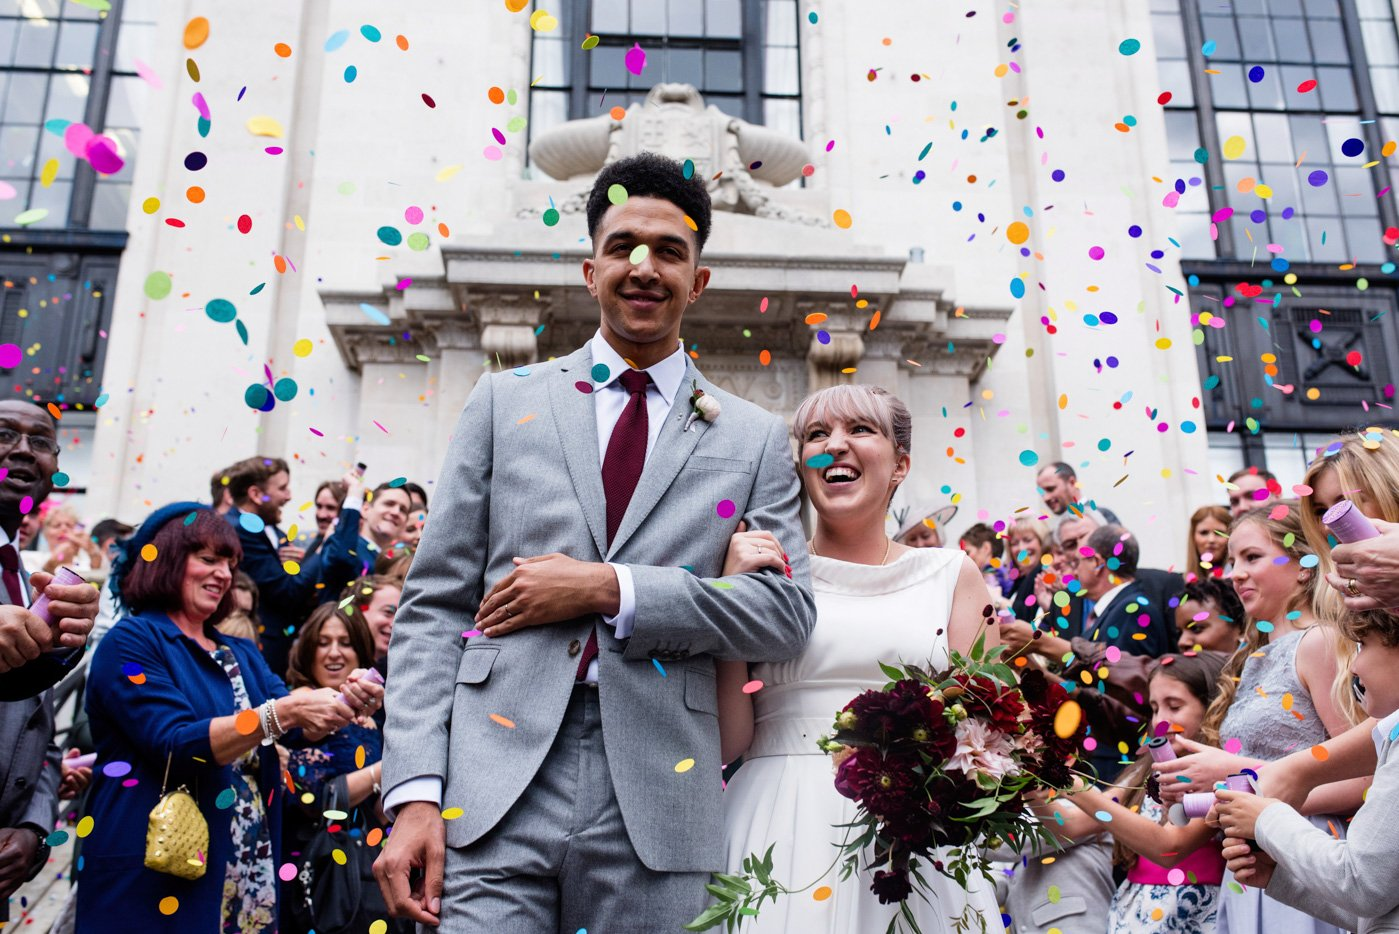 Alternative wedding photographer colourful quirky wedding